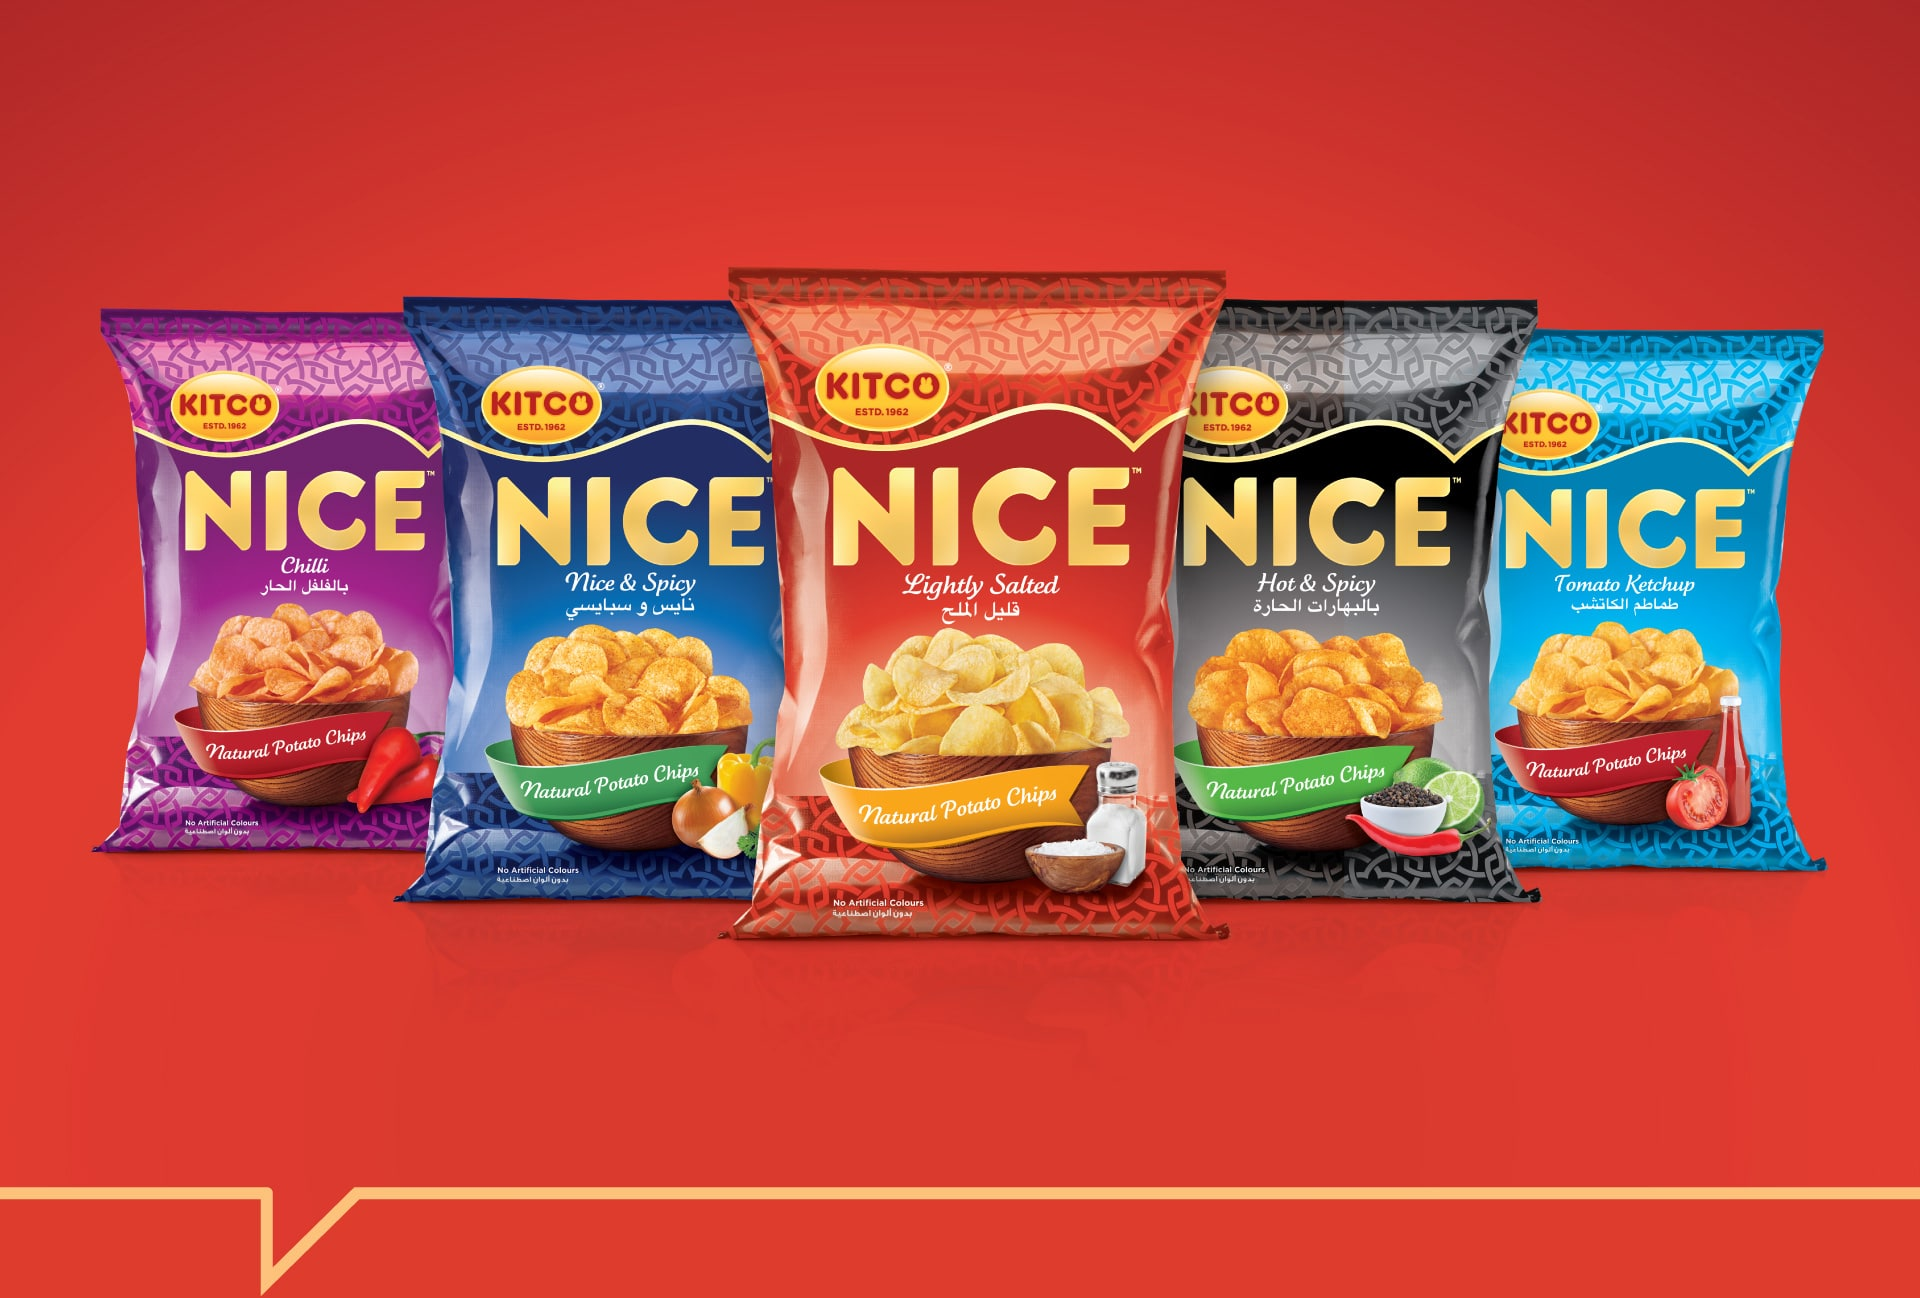 Kitco Nice - Brand Packaging Design